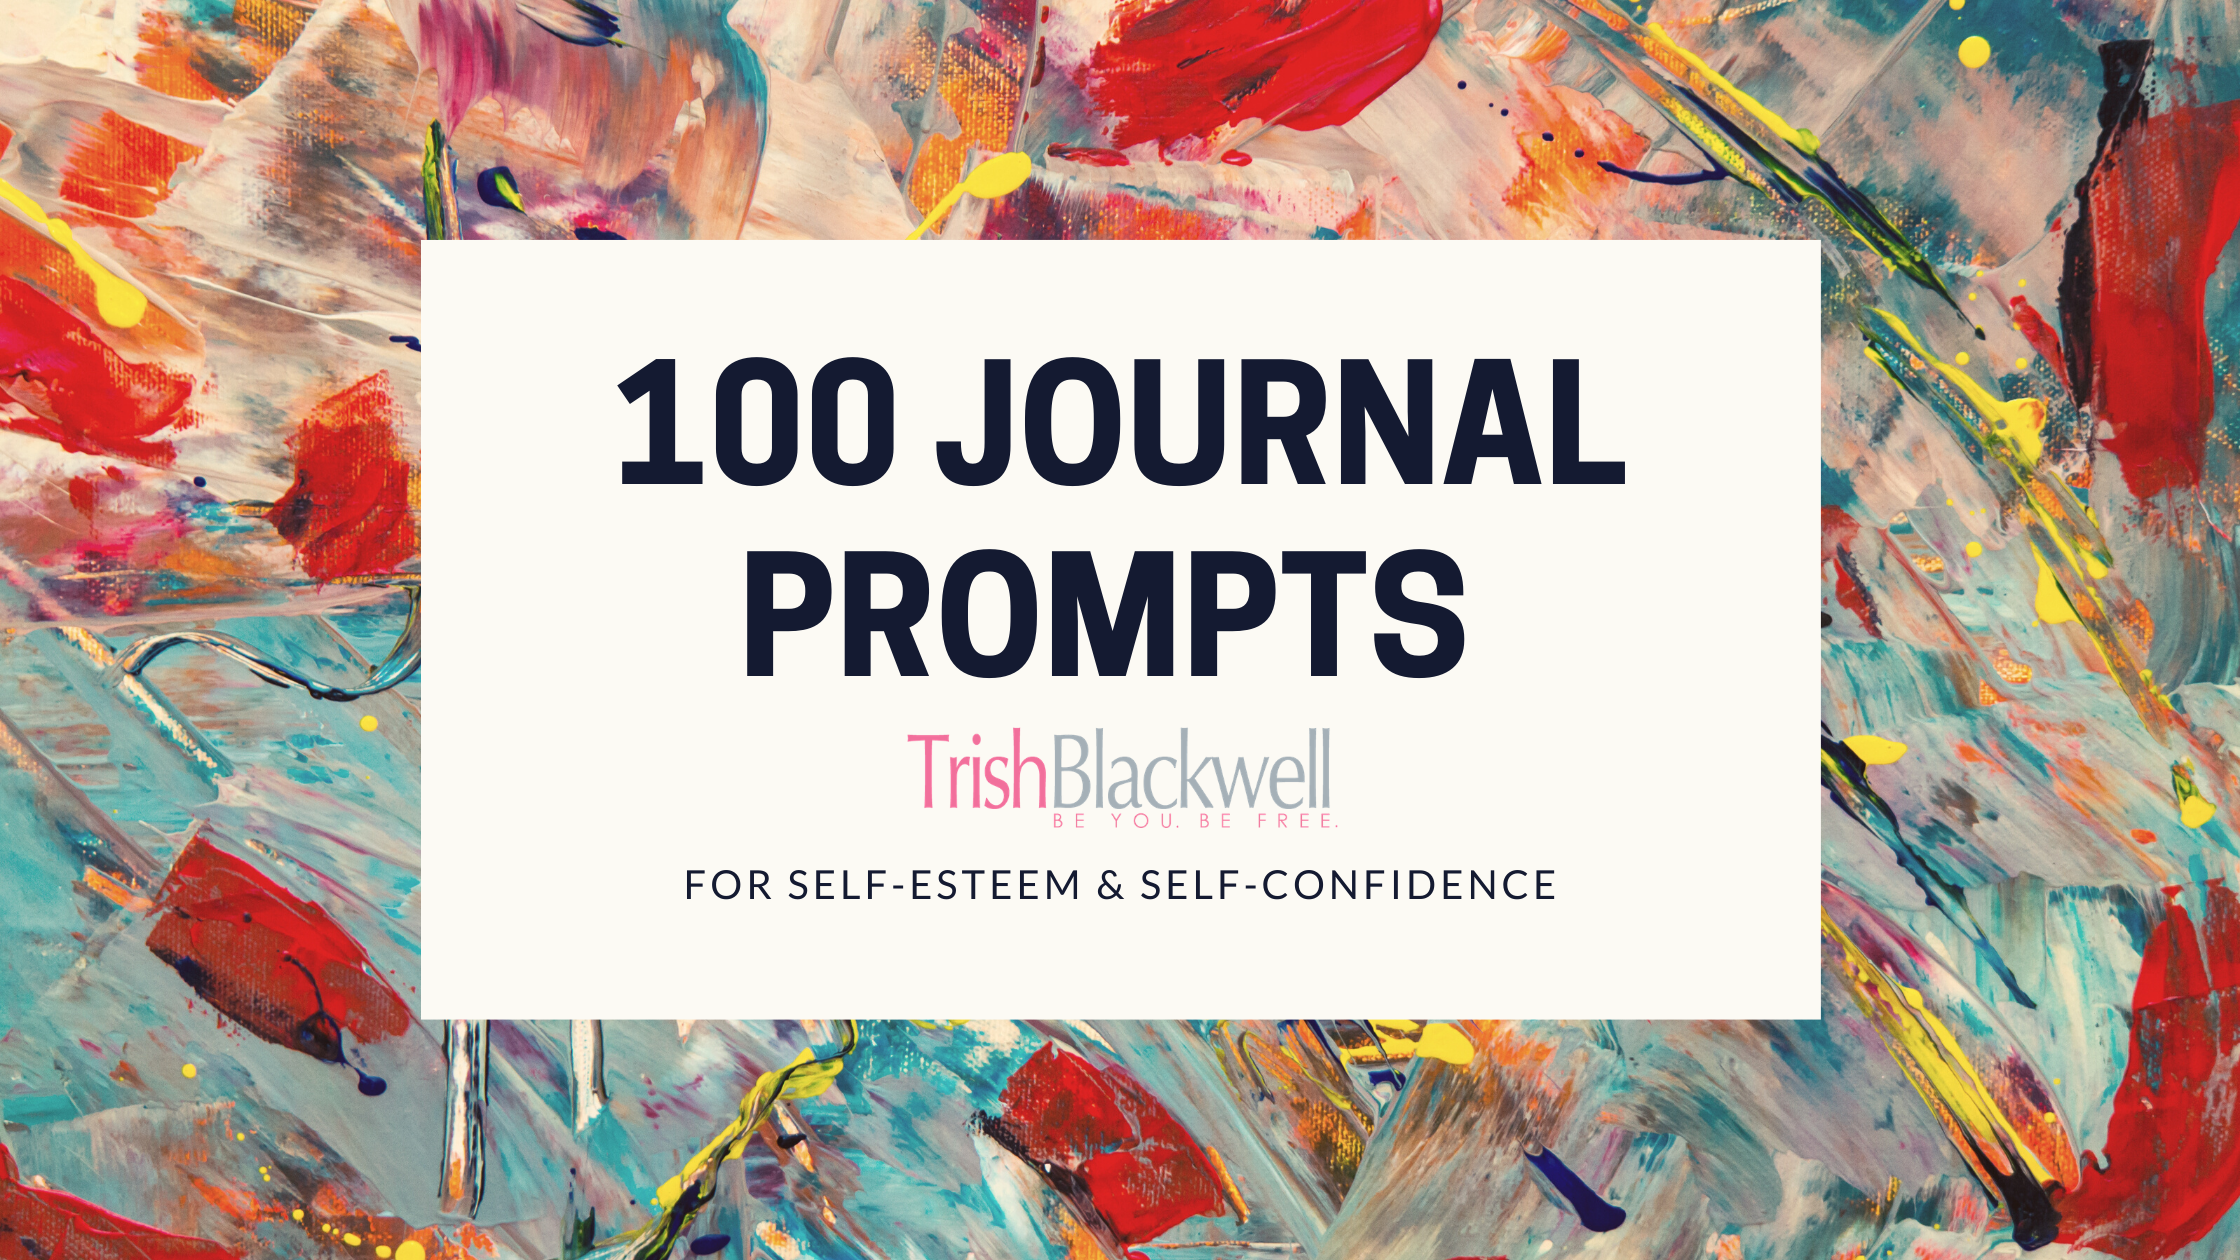 Journaling awakens confidence, identity and self-esteem. These 100 journal prompts for self-esteem will launch your journaling inspiration.